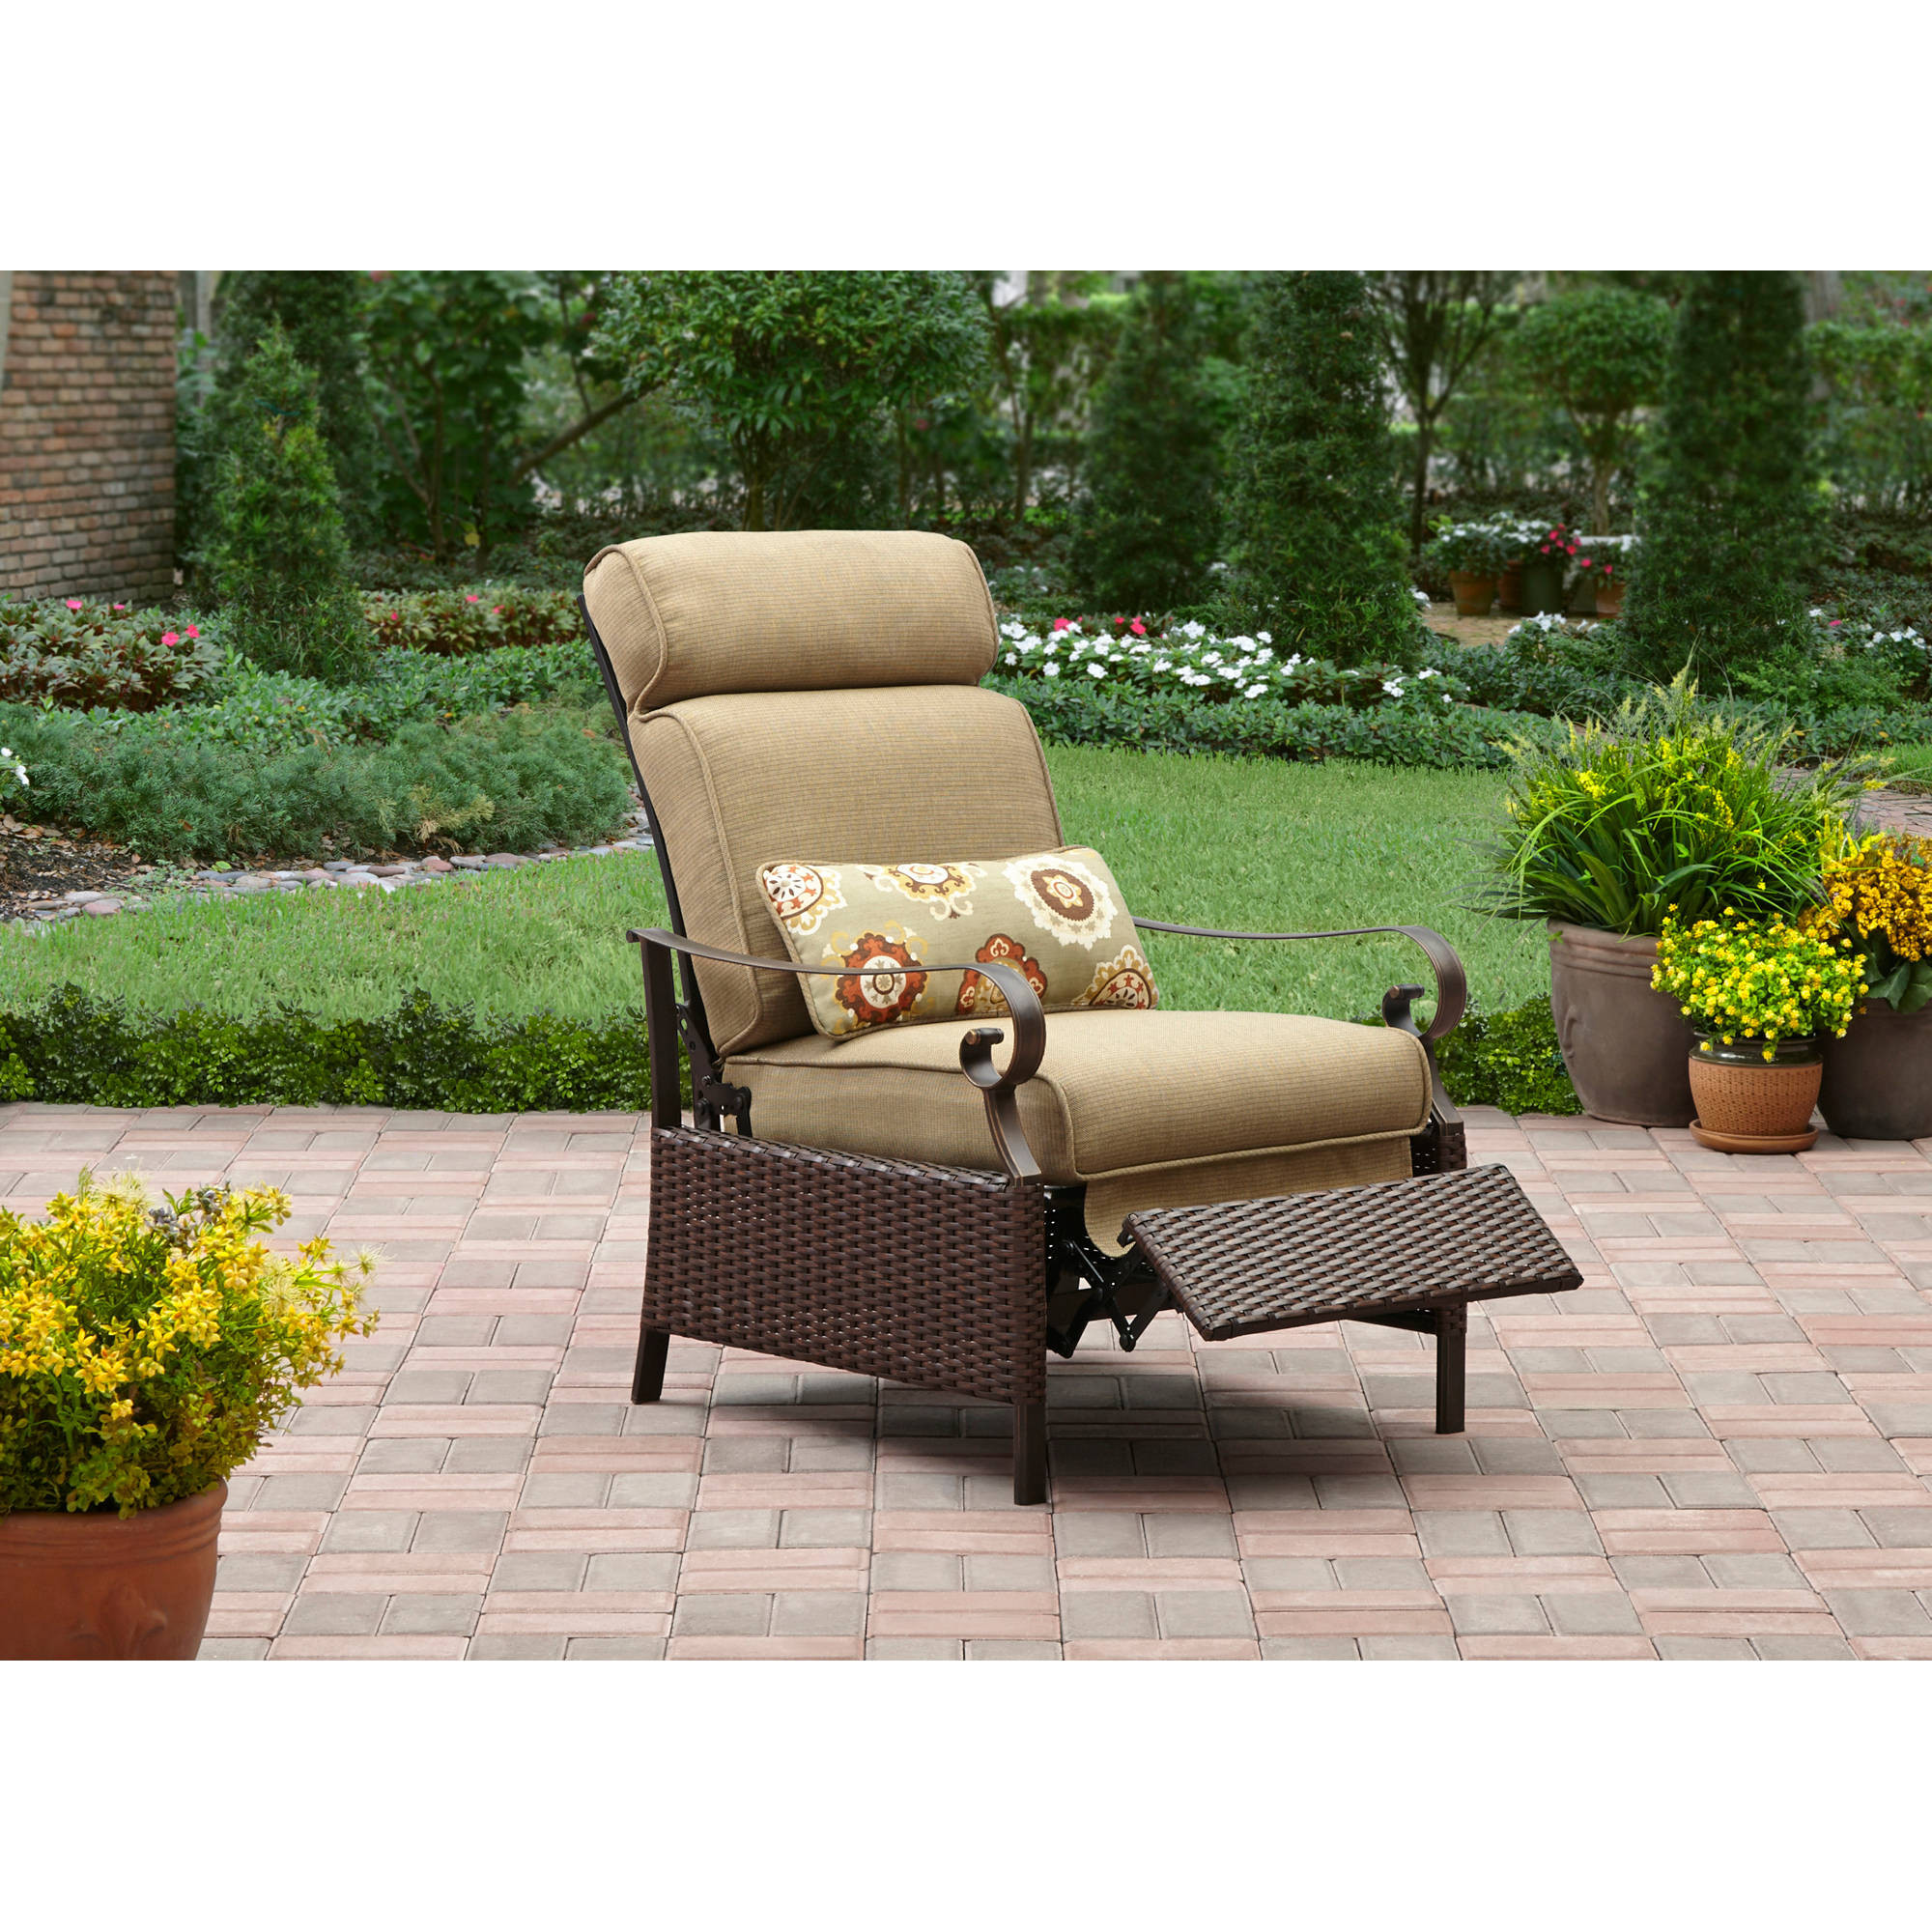 Best ideas about Outdoor Chairs Walmart . Save or Pin Outdoor Zero Gravity Chairs Walmart Now.